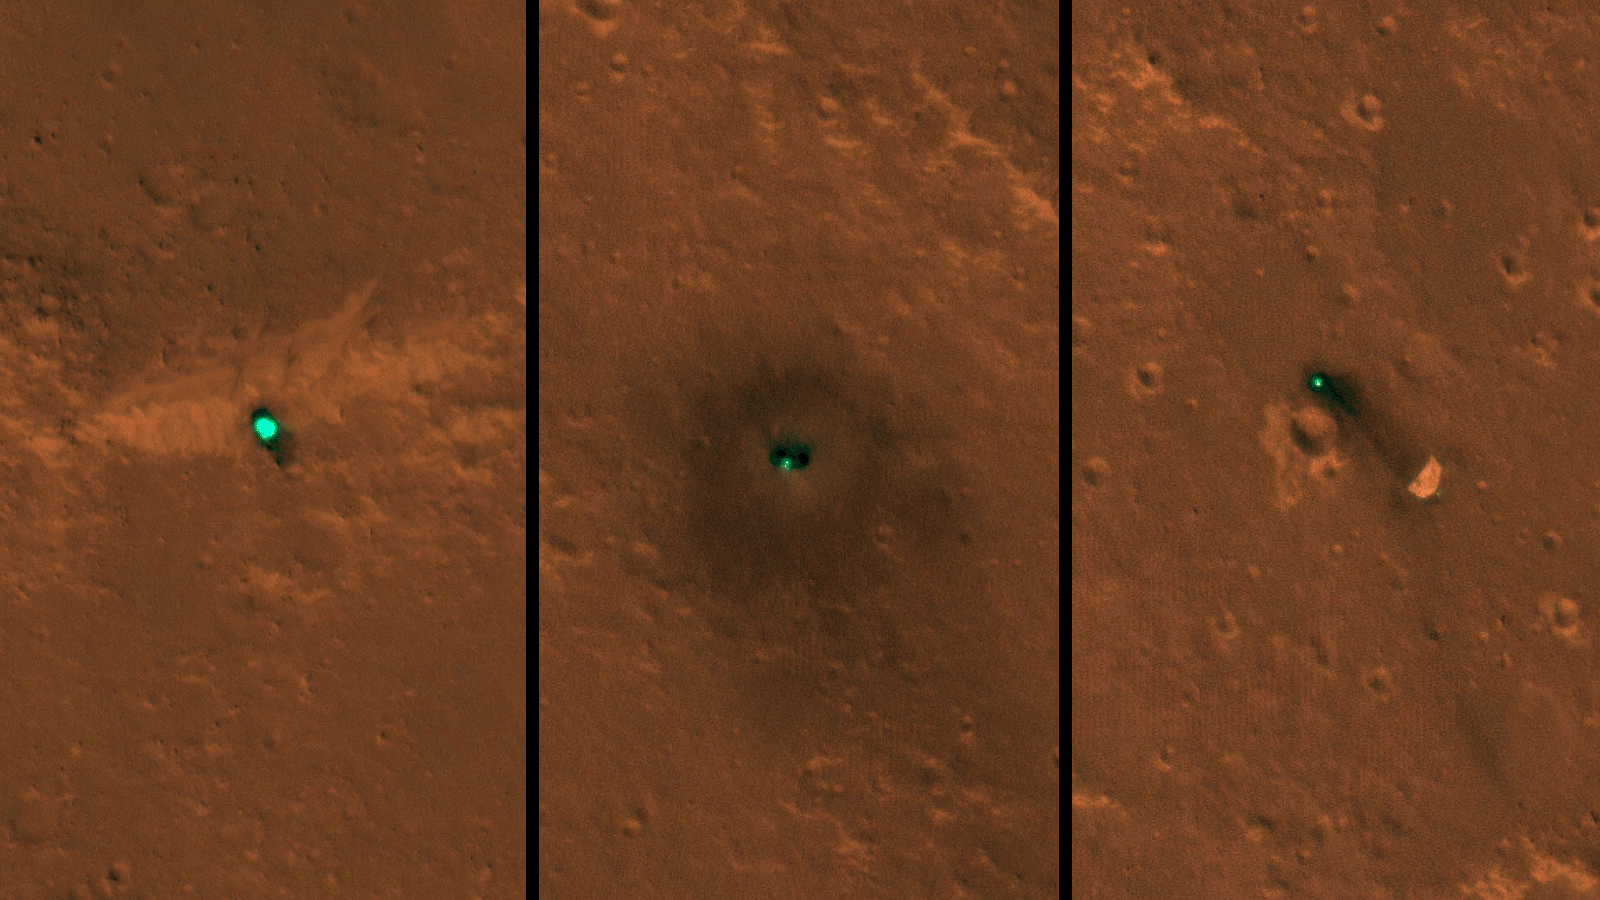 NASA's InSight spacecraft, its head shield and its parachute were imaged on Dec. 6 and 11 by the HiRISE camera onboard NASA's Mars Reconnaissance Orbiter.